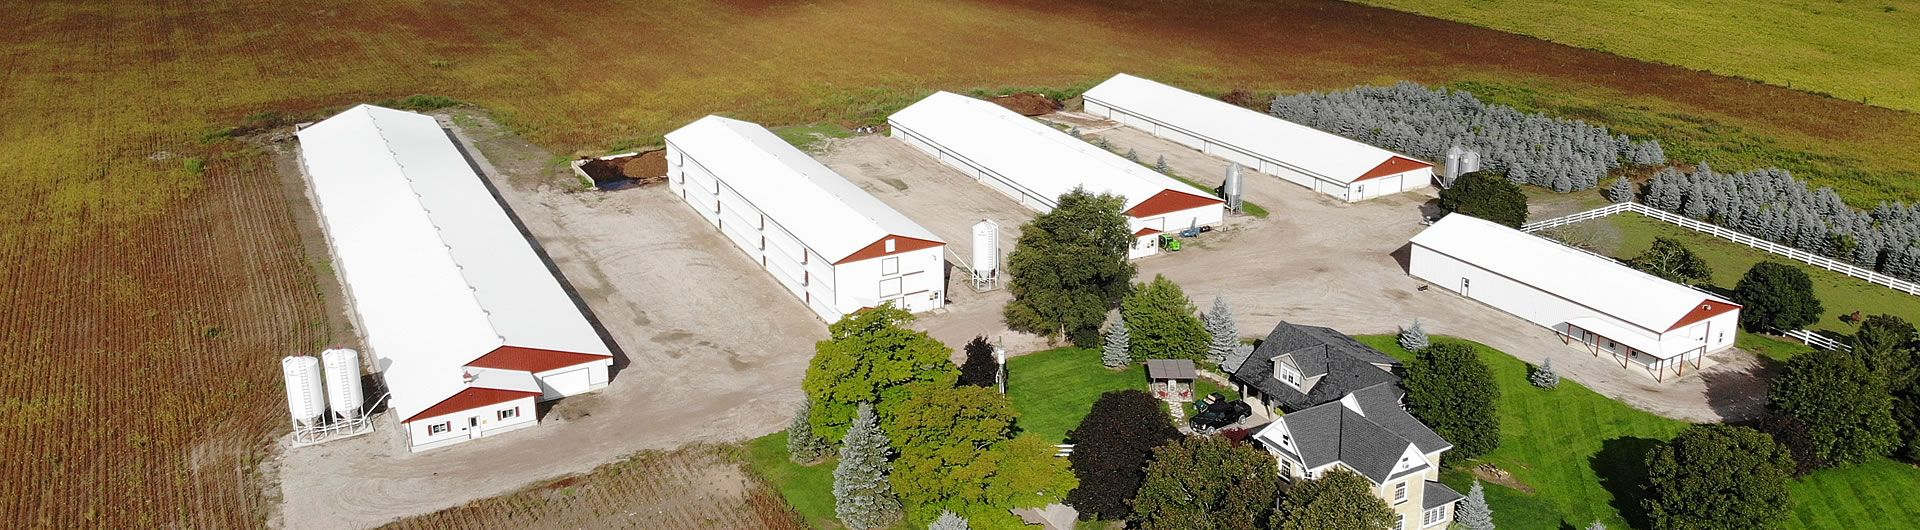 Aerial shot farm buildings